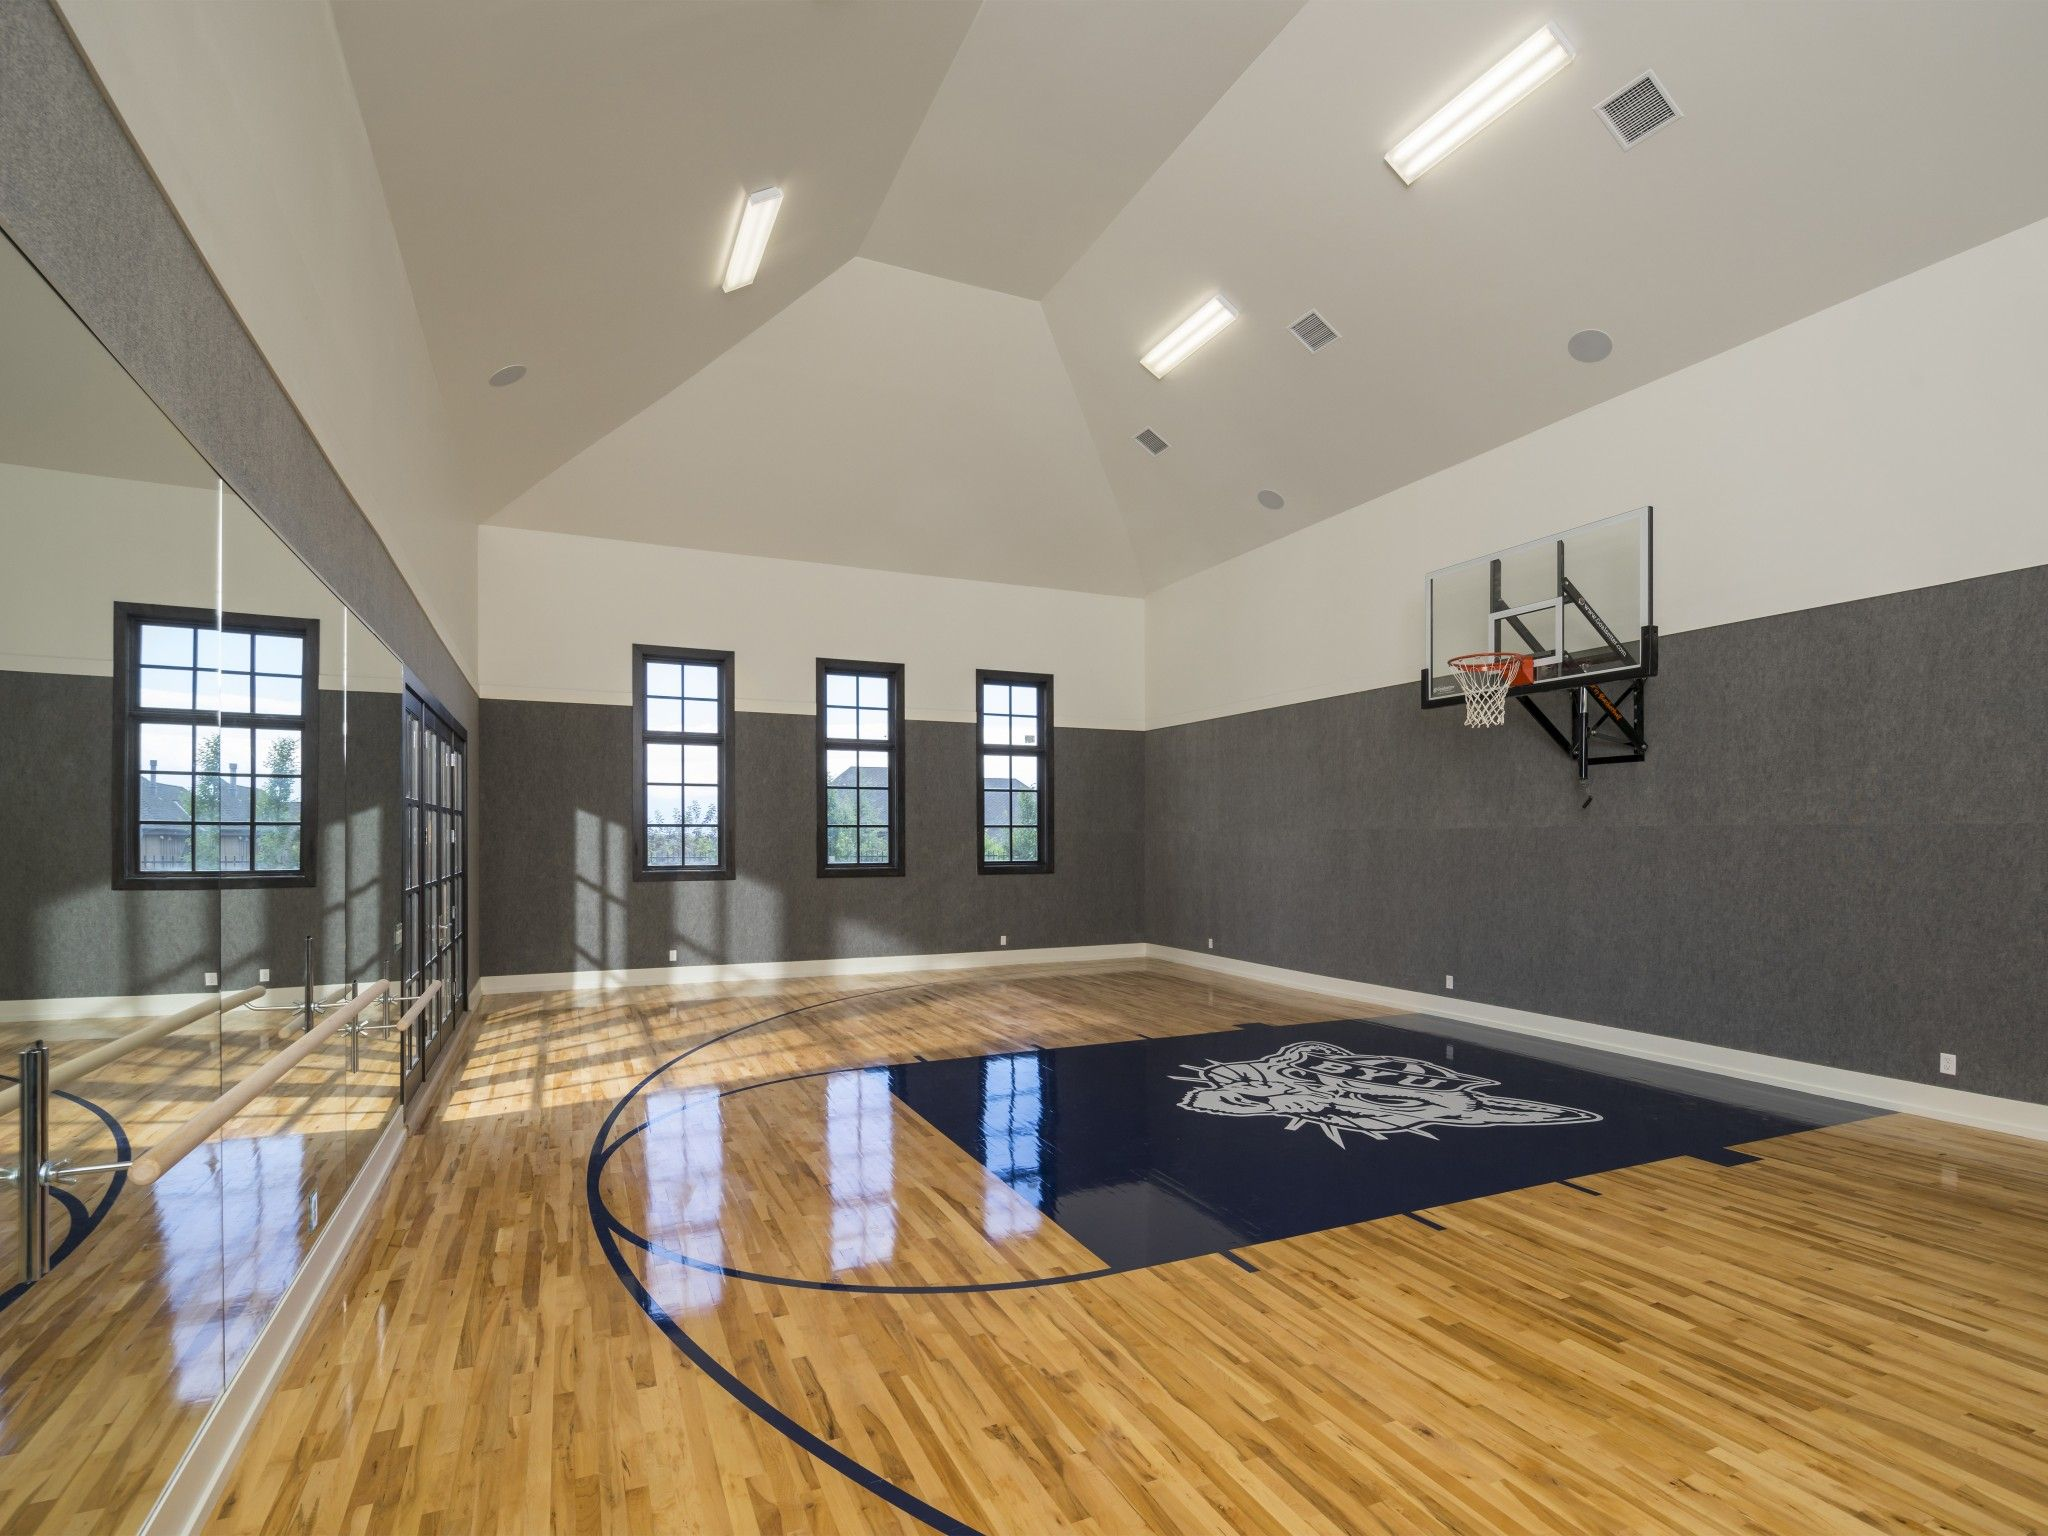 Plan 290000iy Sport Court Splendor Bedroom House Plans Luxury House Plans Home Basketball Court